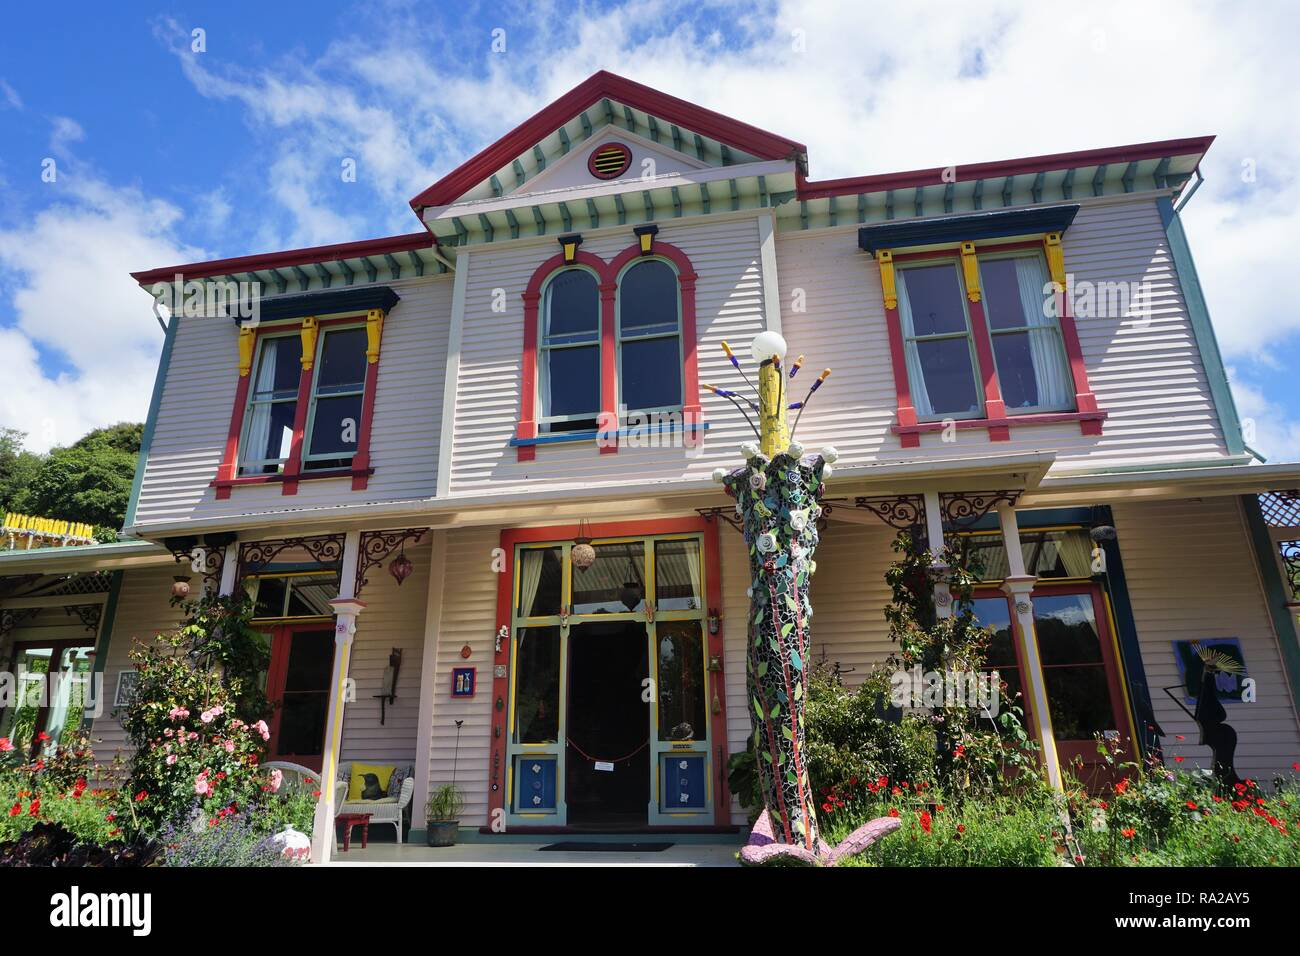 An Enchanting Bed & Breakfast Place in Akaroa, South Island, New Zealand - Stock Image